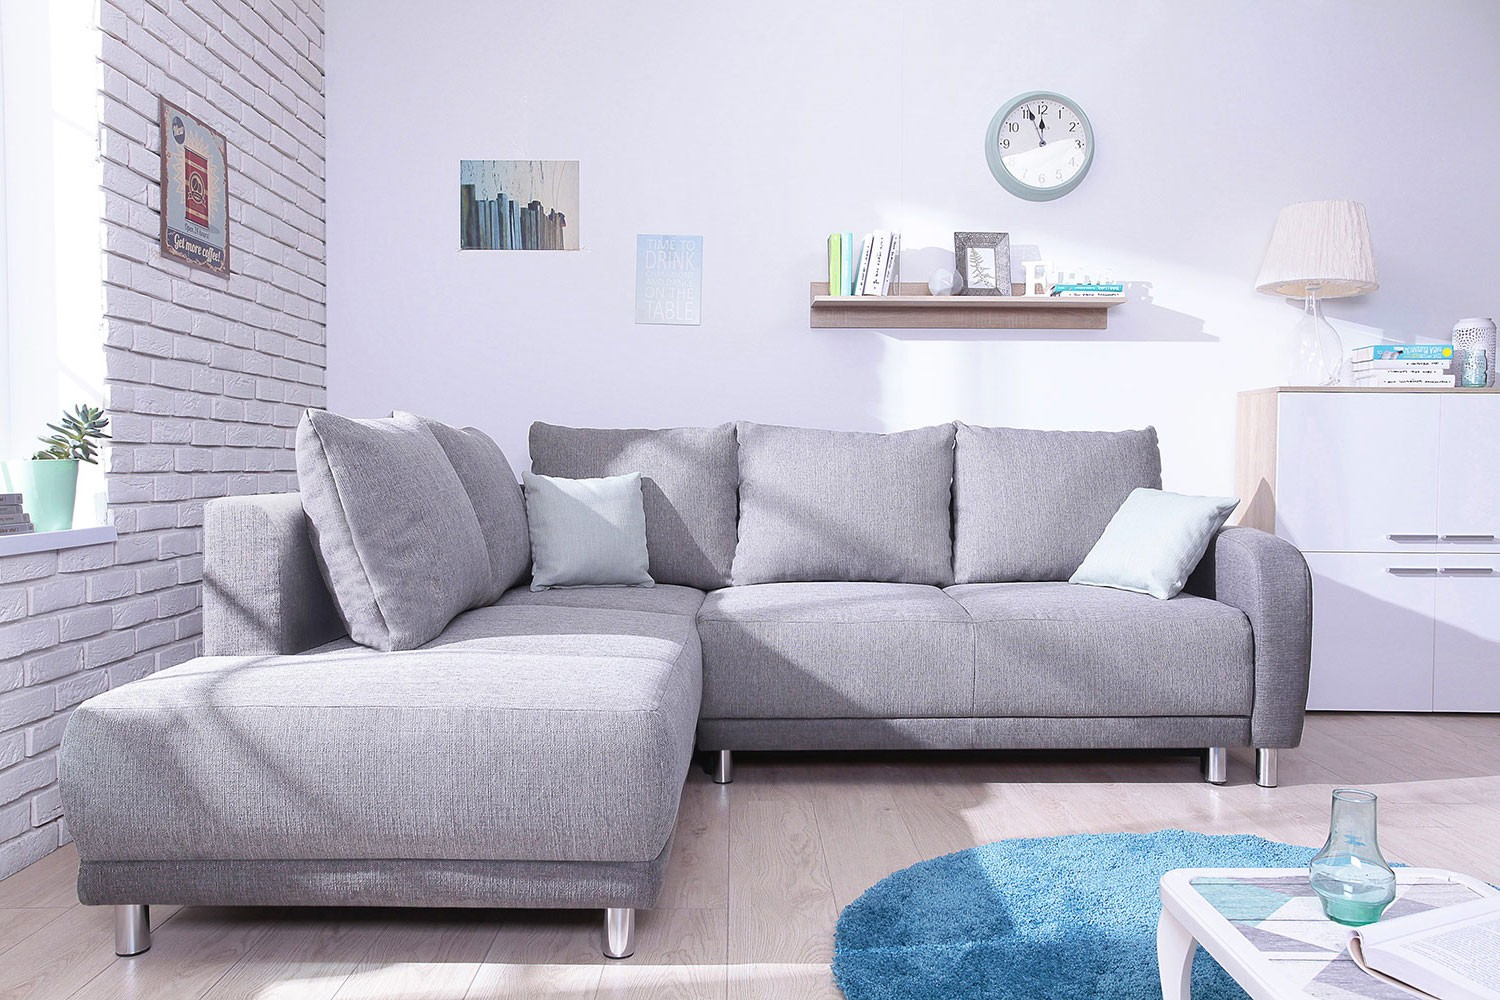 Canape Gris Angle Minty Grand Angle Gauche Canapé Convertible Scandinave Bobochic Bicolore Gris Clair